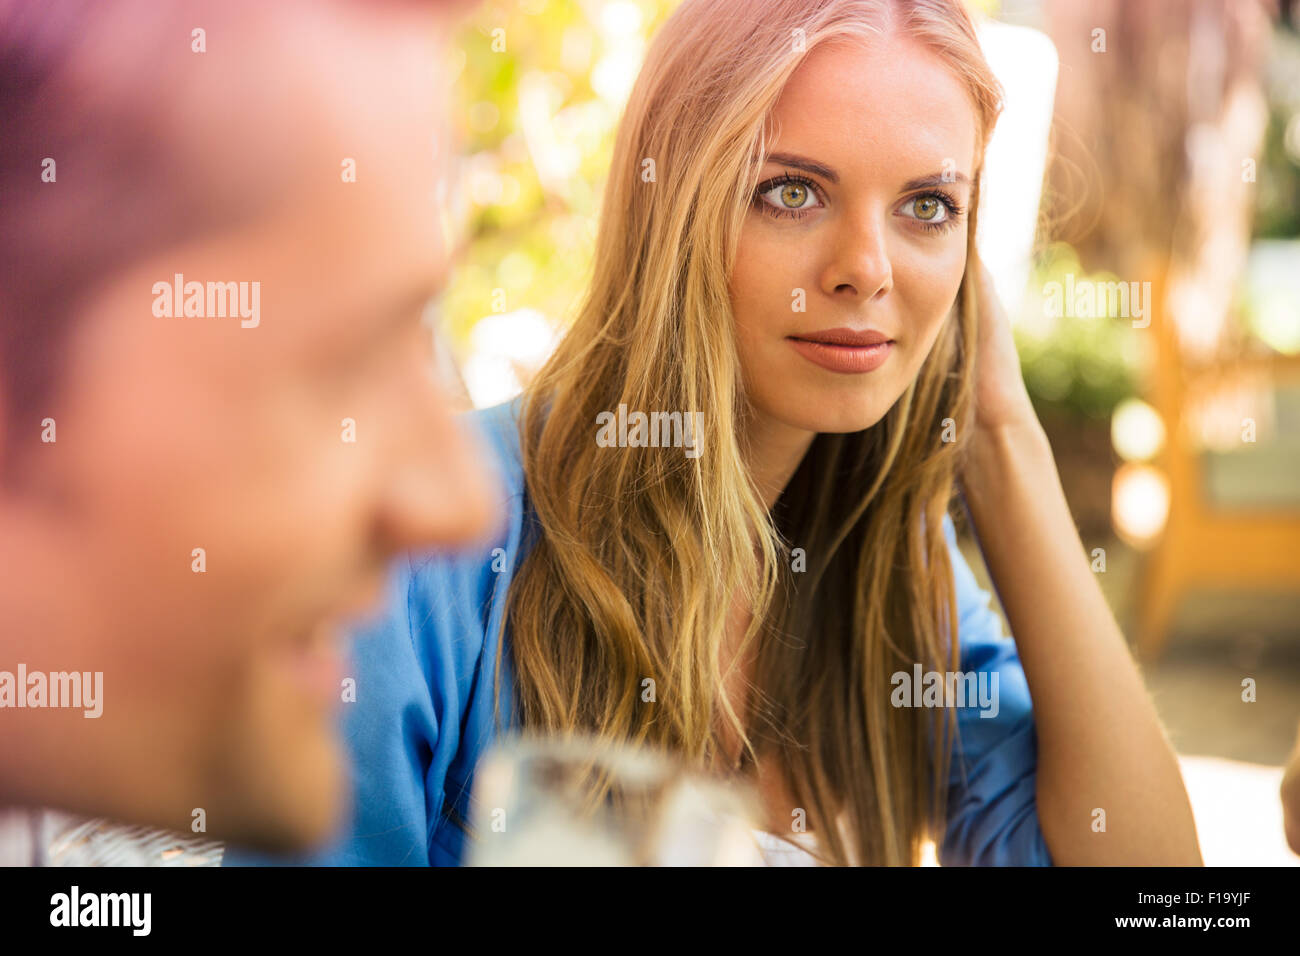 Portrait of a young woman sitting in outdoor restaurant with her friends - Stock Image